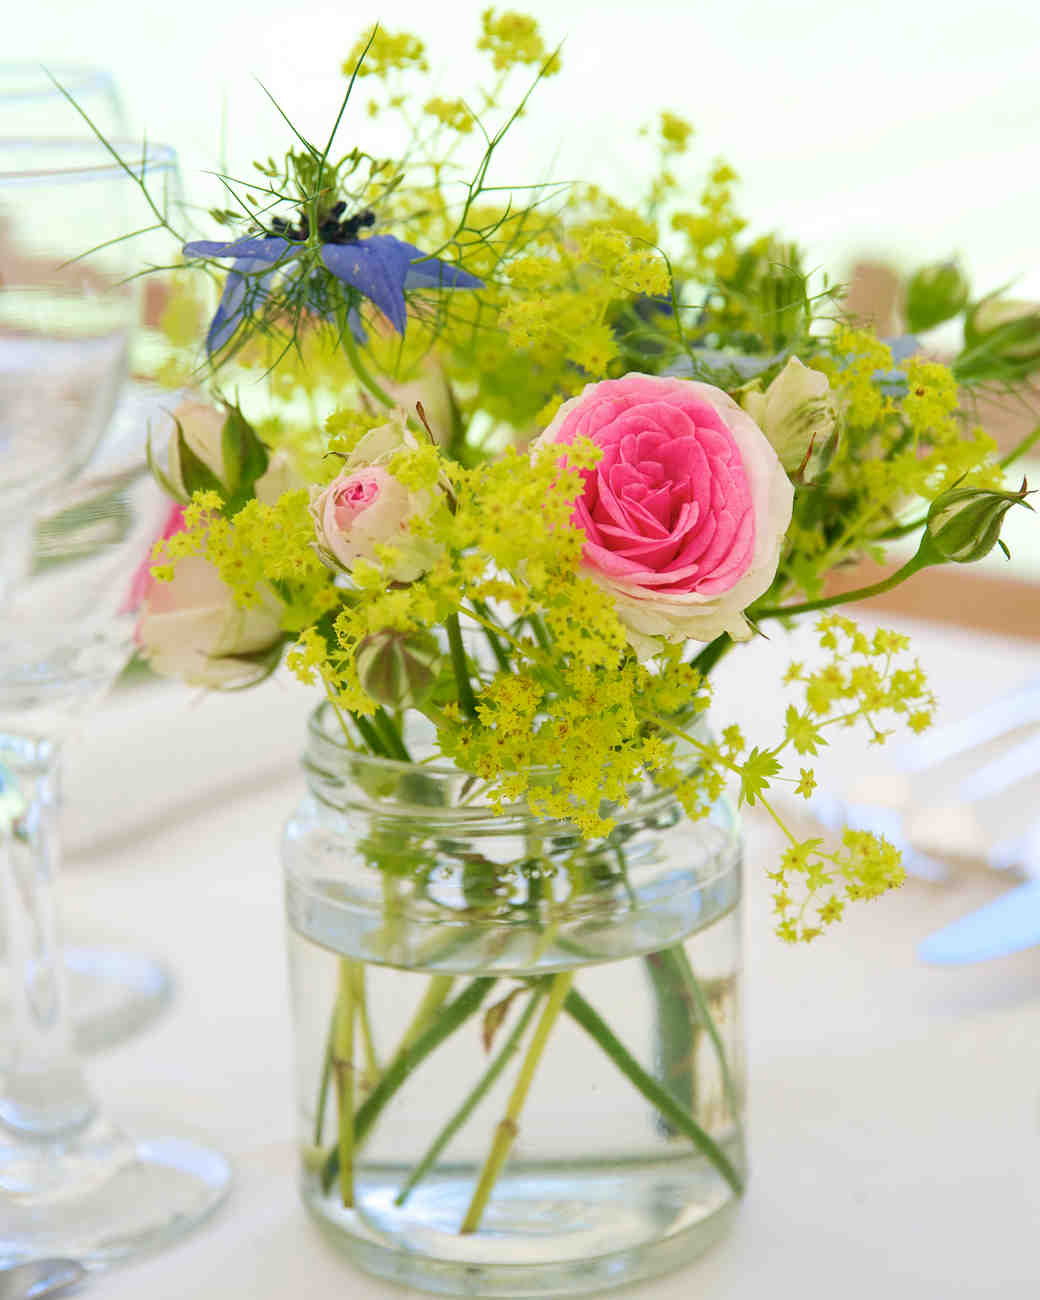 Flower Arrangement Wedding: 36 Simple Wedding Centerpieces